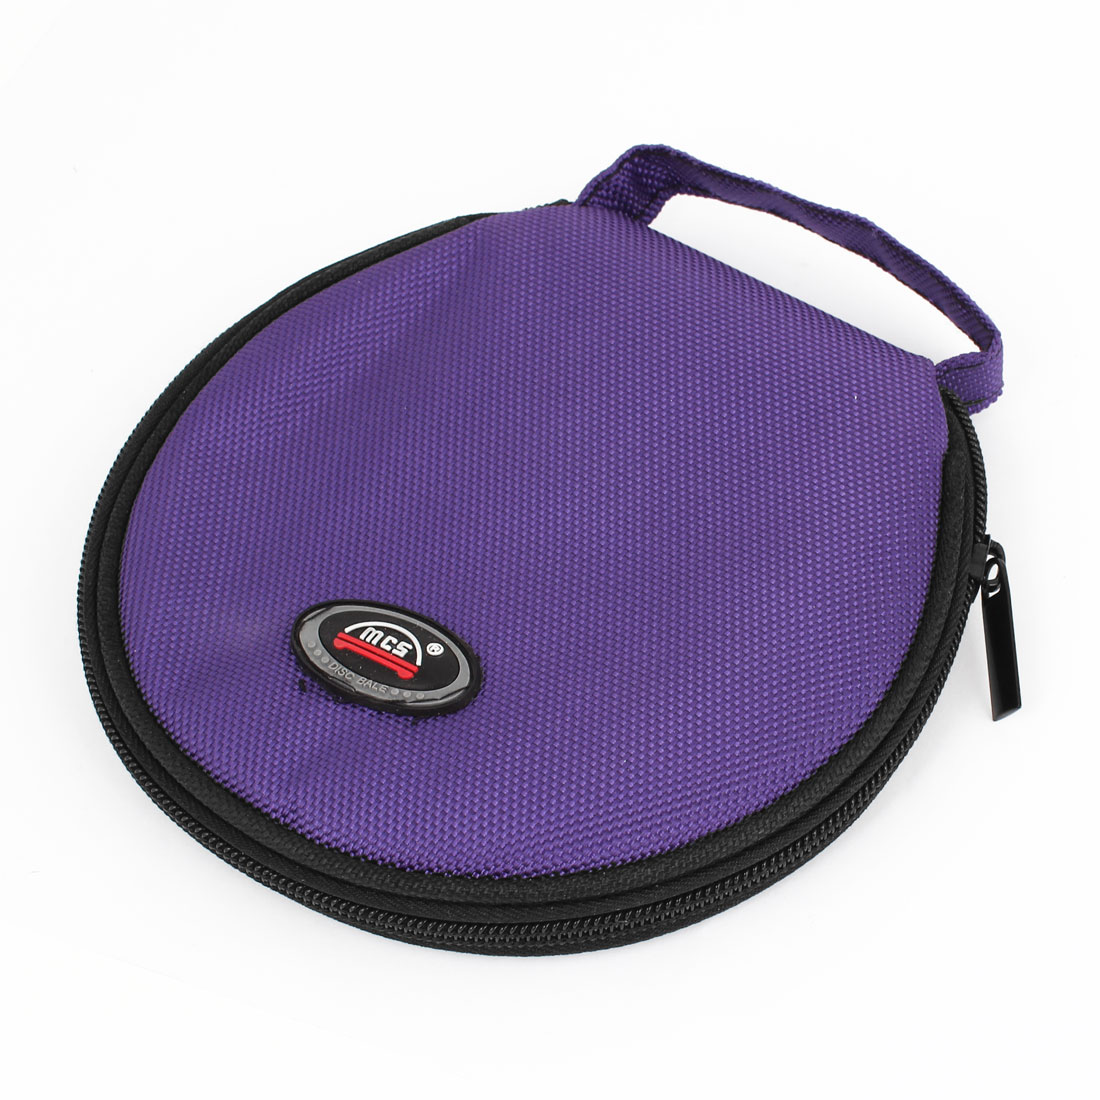 Car Universal Purple Oxford Fabric Cover 20 Capacity CD Holder Wallet Bag Case